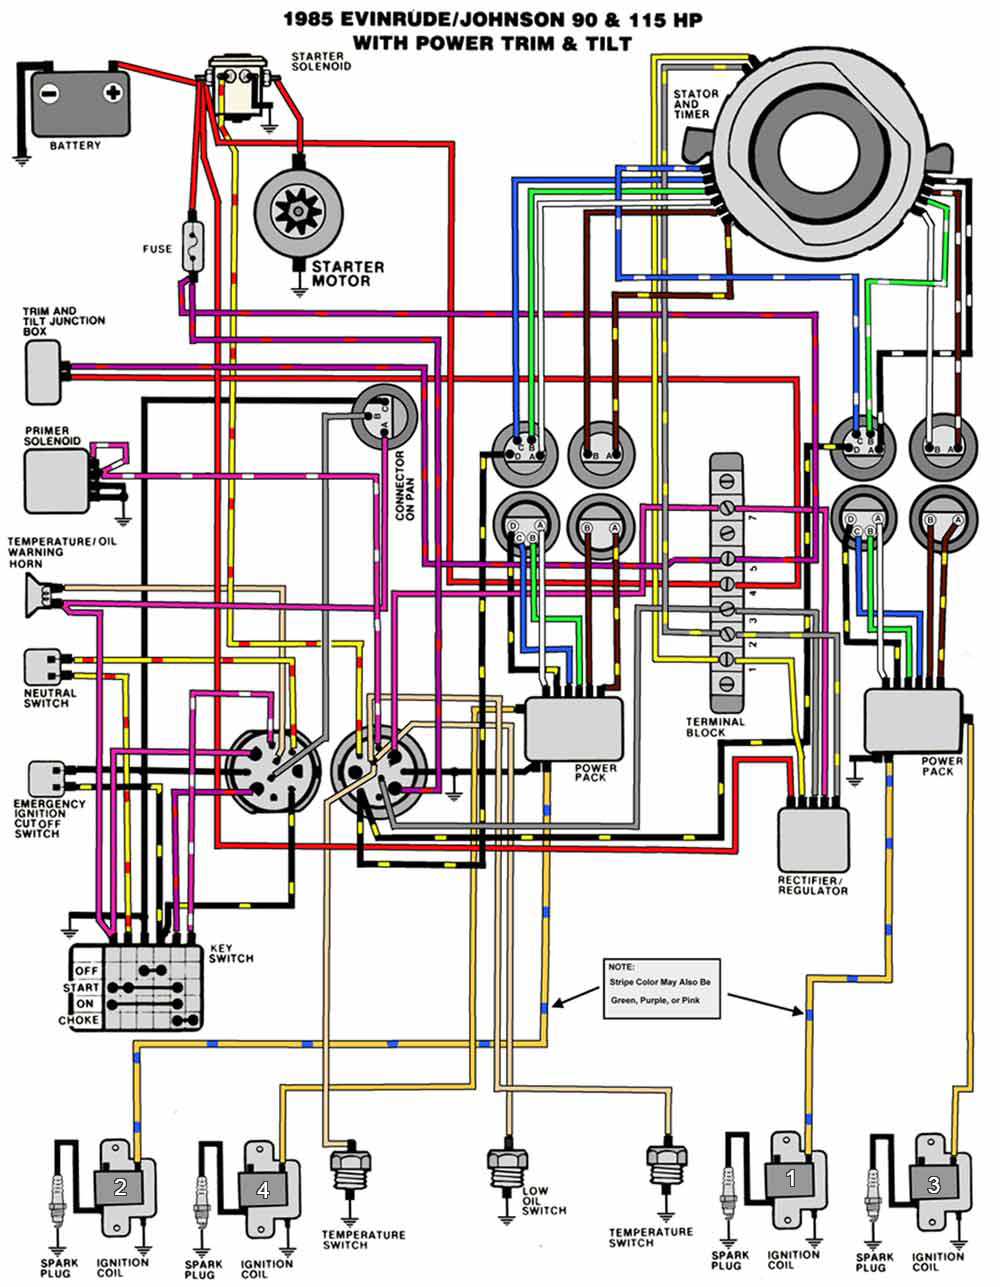 1985_90_115TnT mastertech marine evinrude johnson outboard wiring diagrams 70 HP Evinrude Schematic at aneh.co